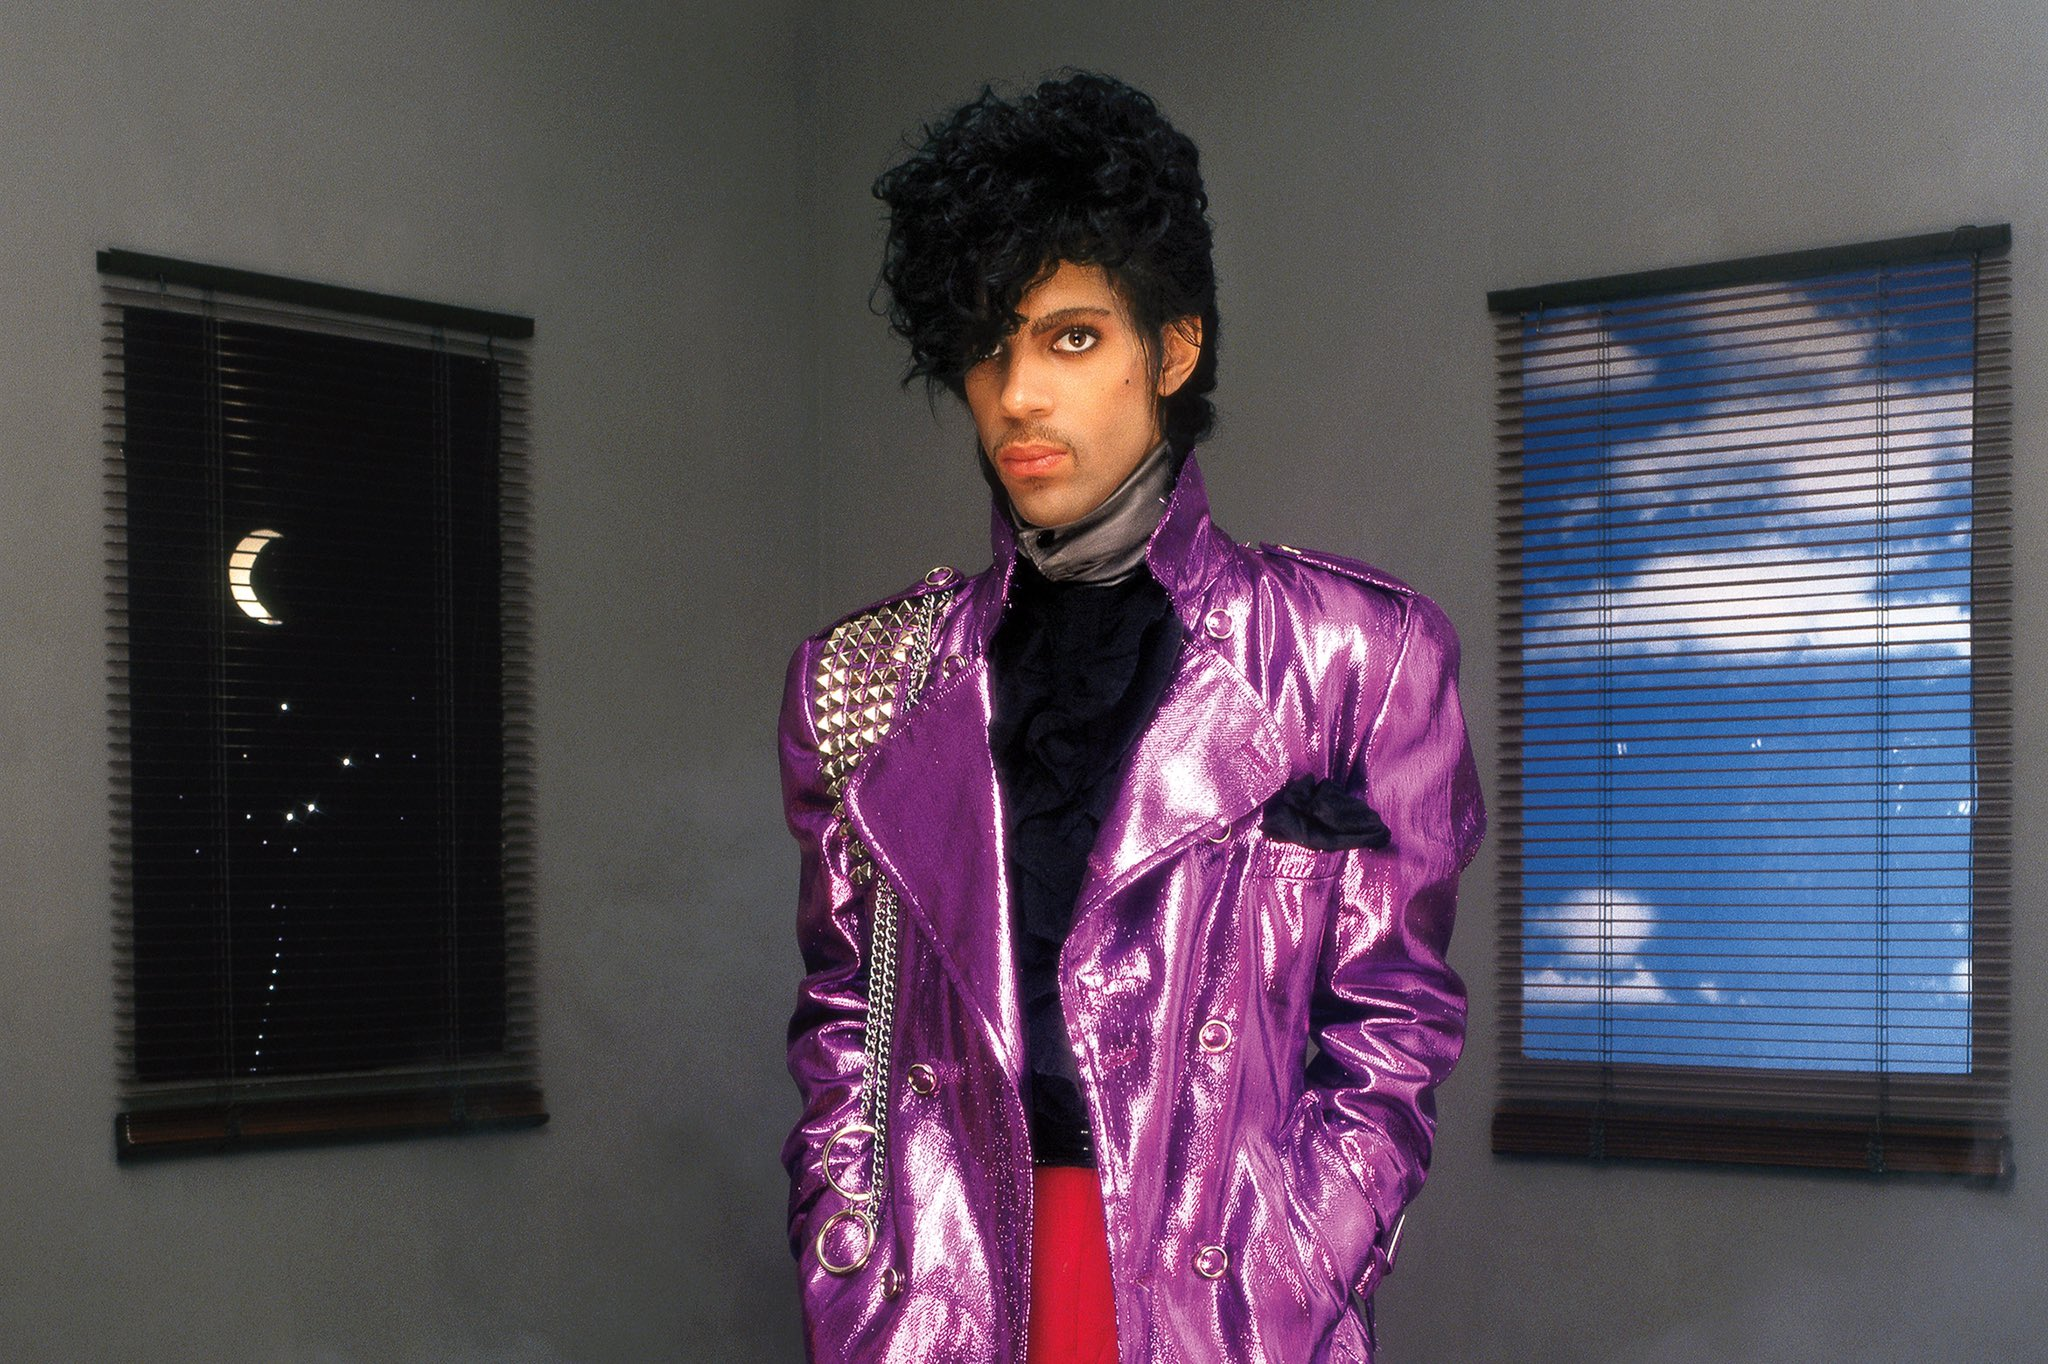 Happy birthday prince, u made this life so much more beautiful. Rip